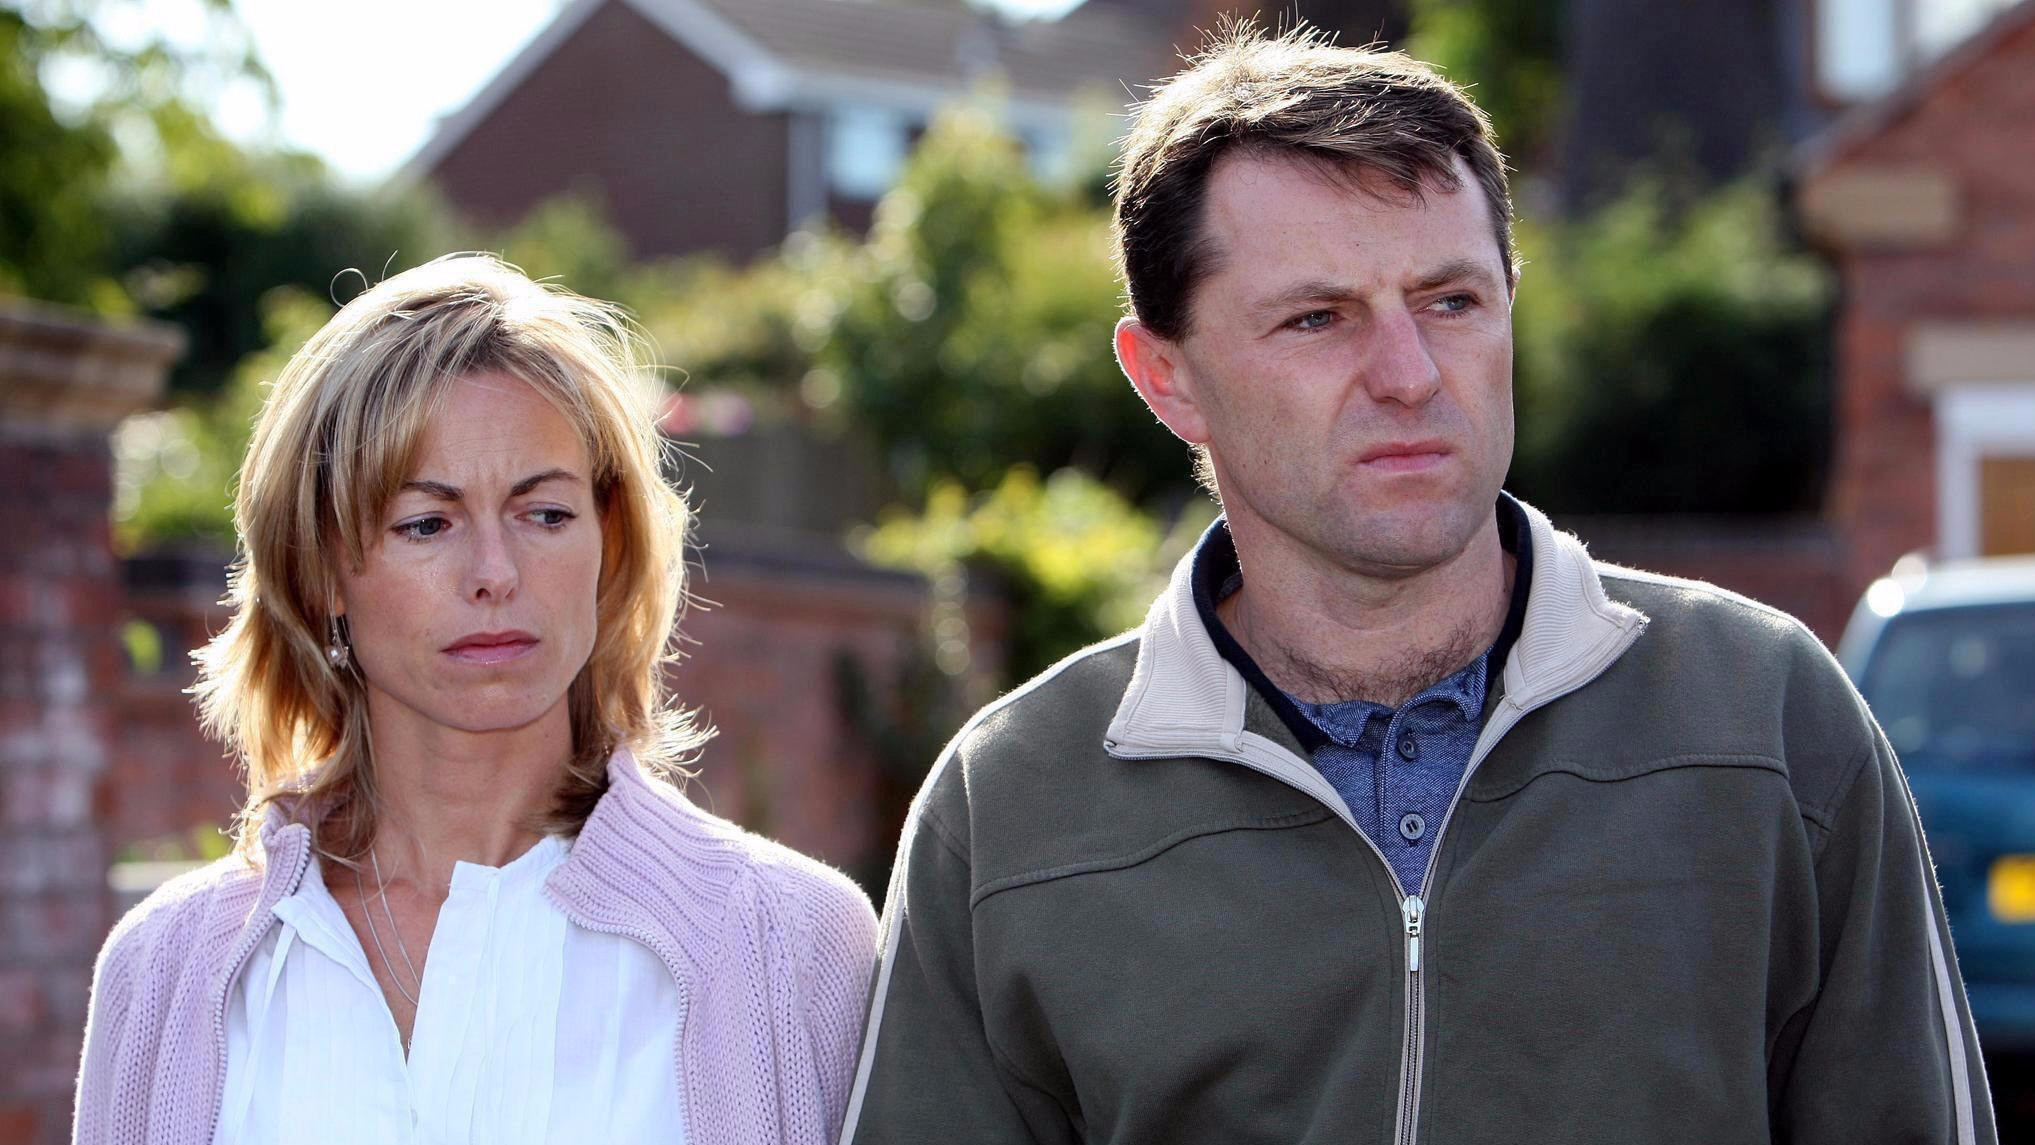 Kate And Gerry McCann Brand Man Who Dressed Up As Madeleine 'An Idiot'